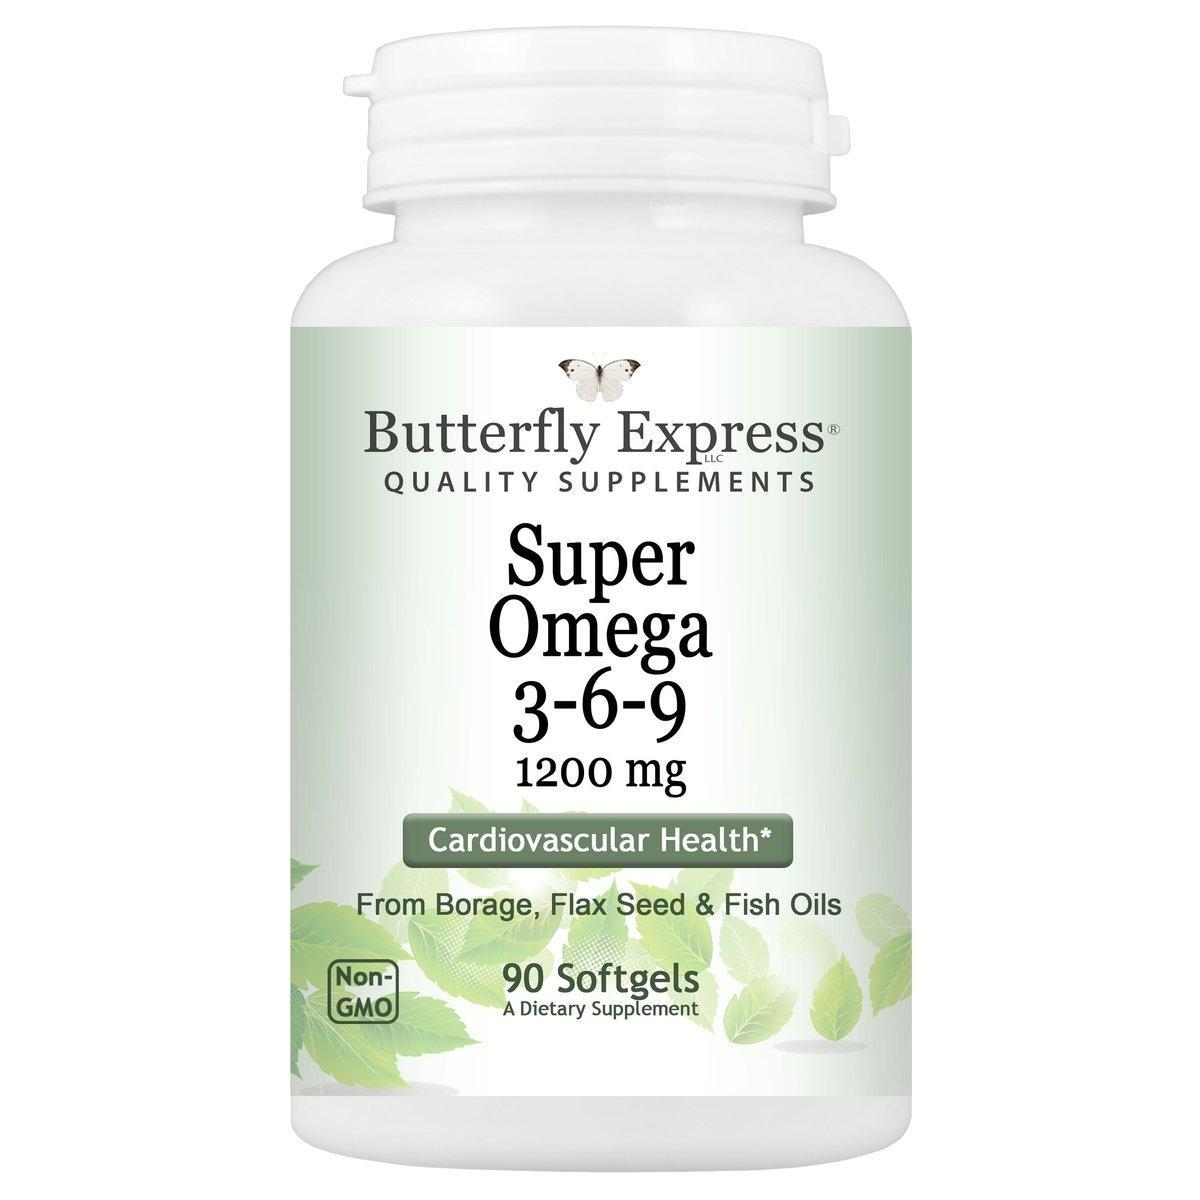 Super Omega 3 6 9 Supplement Butterfly Express Quality Essential Oils